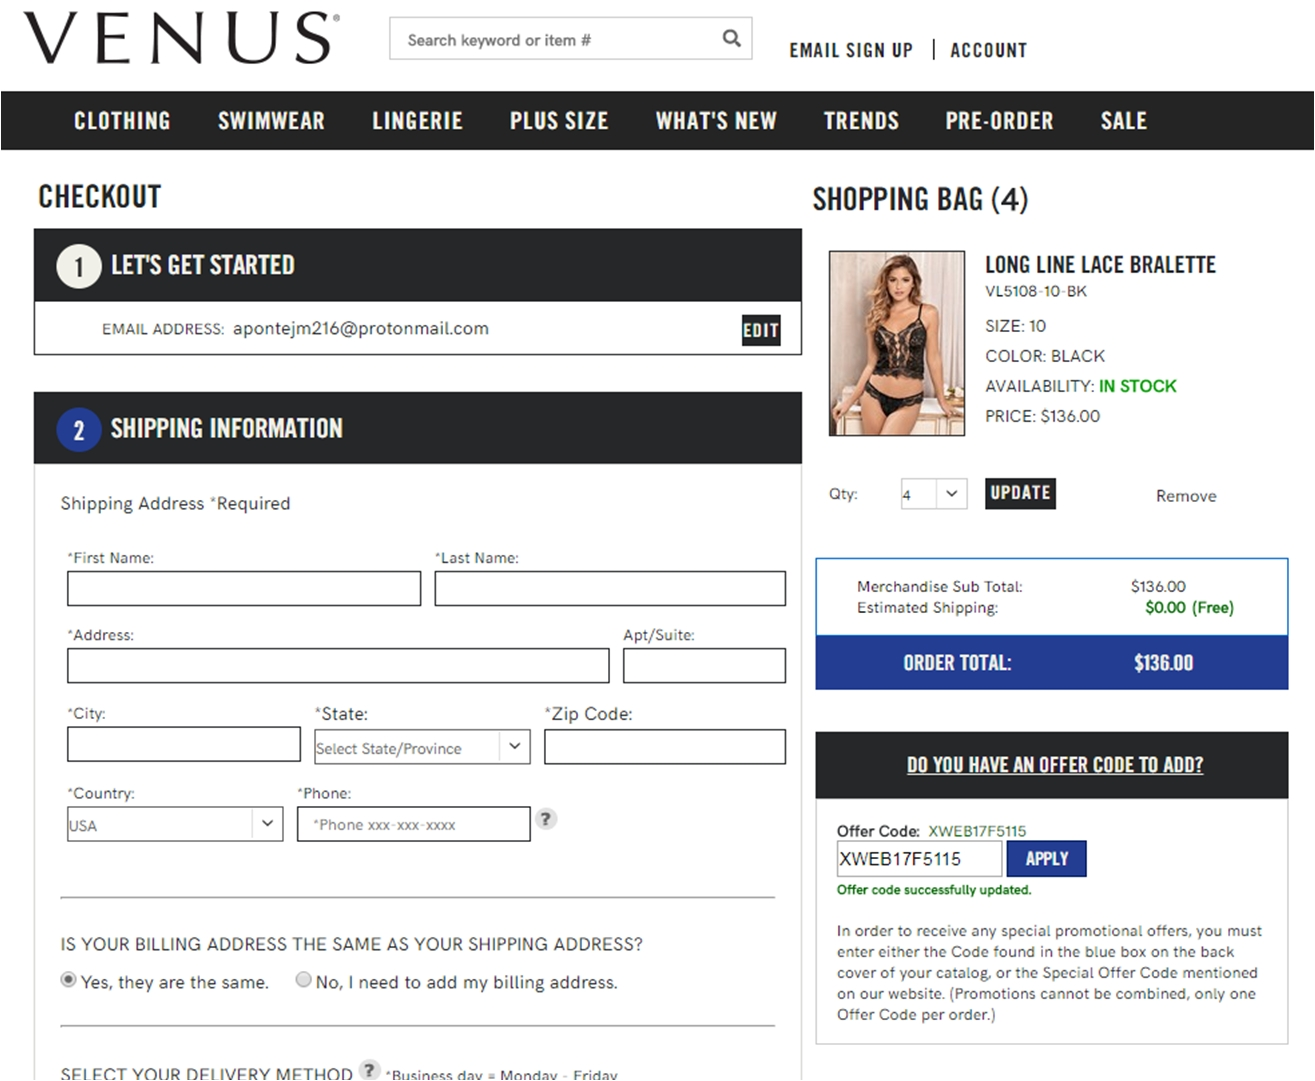 Venus coupon code 2018